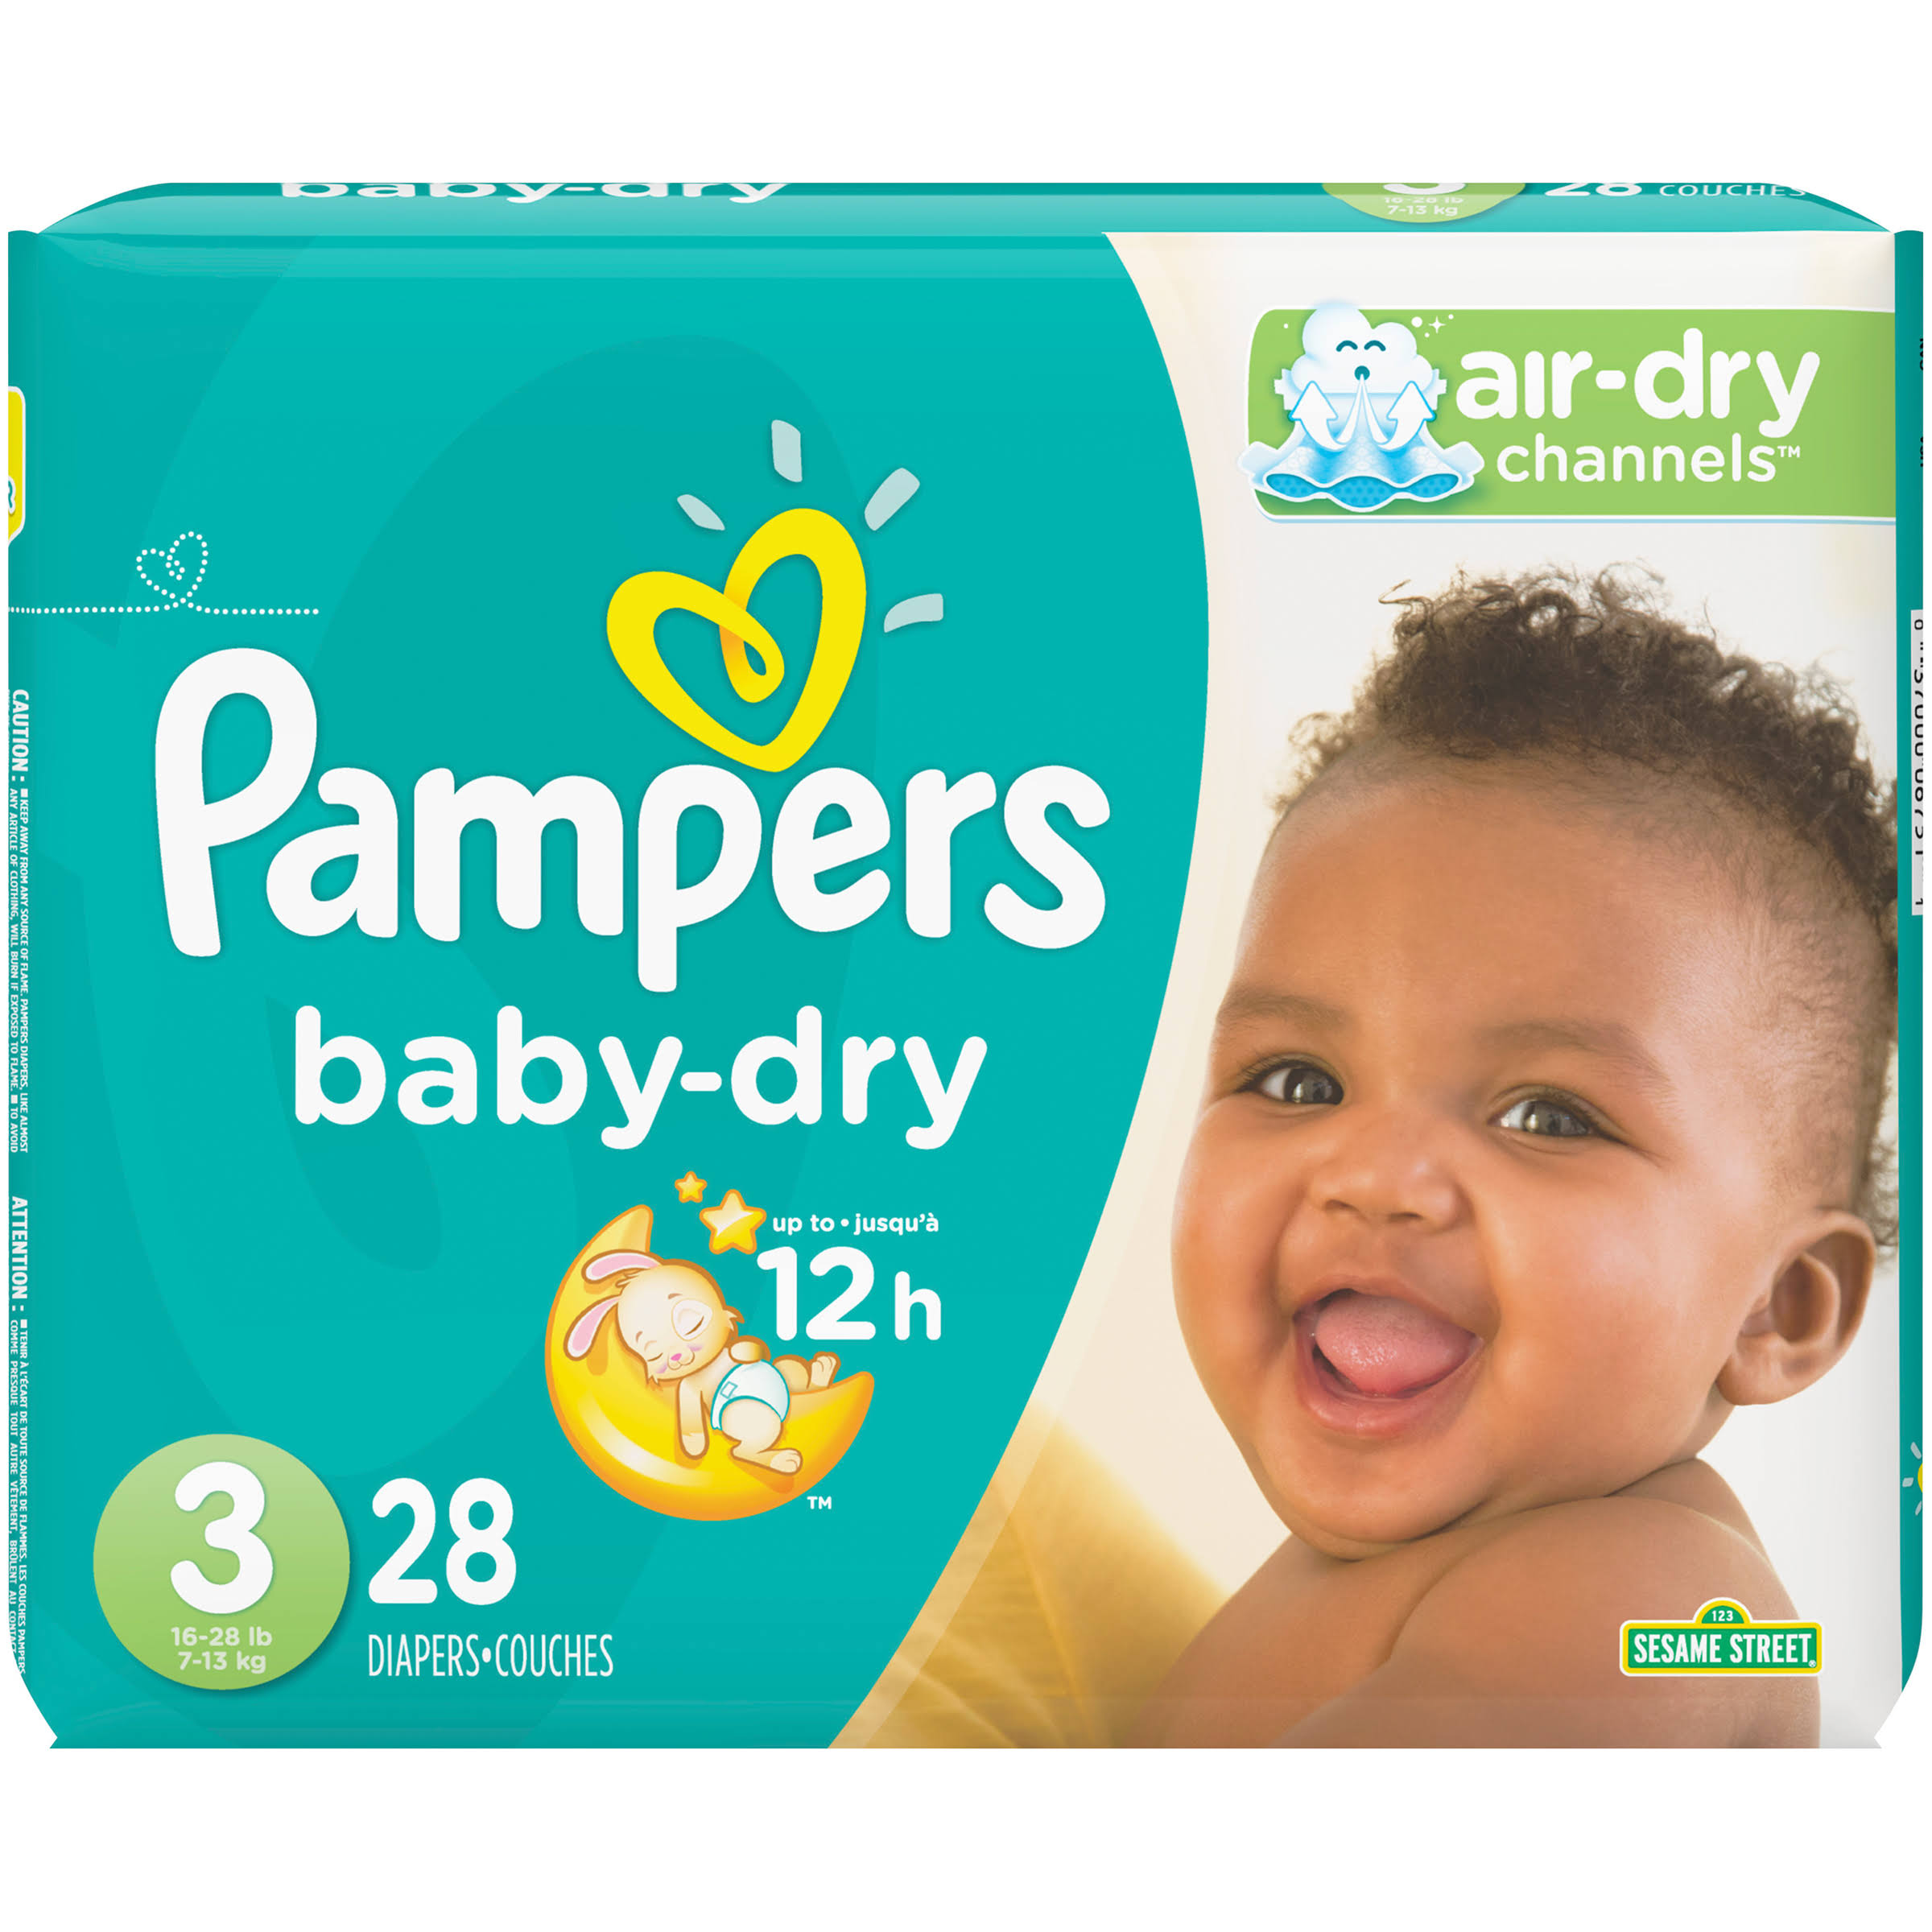 Pampers Baby Dry Diapers - Size 3, 28ct